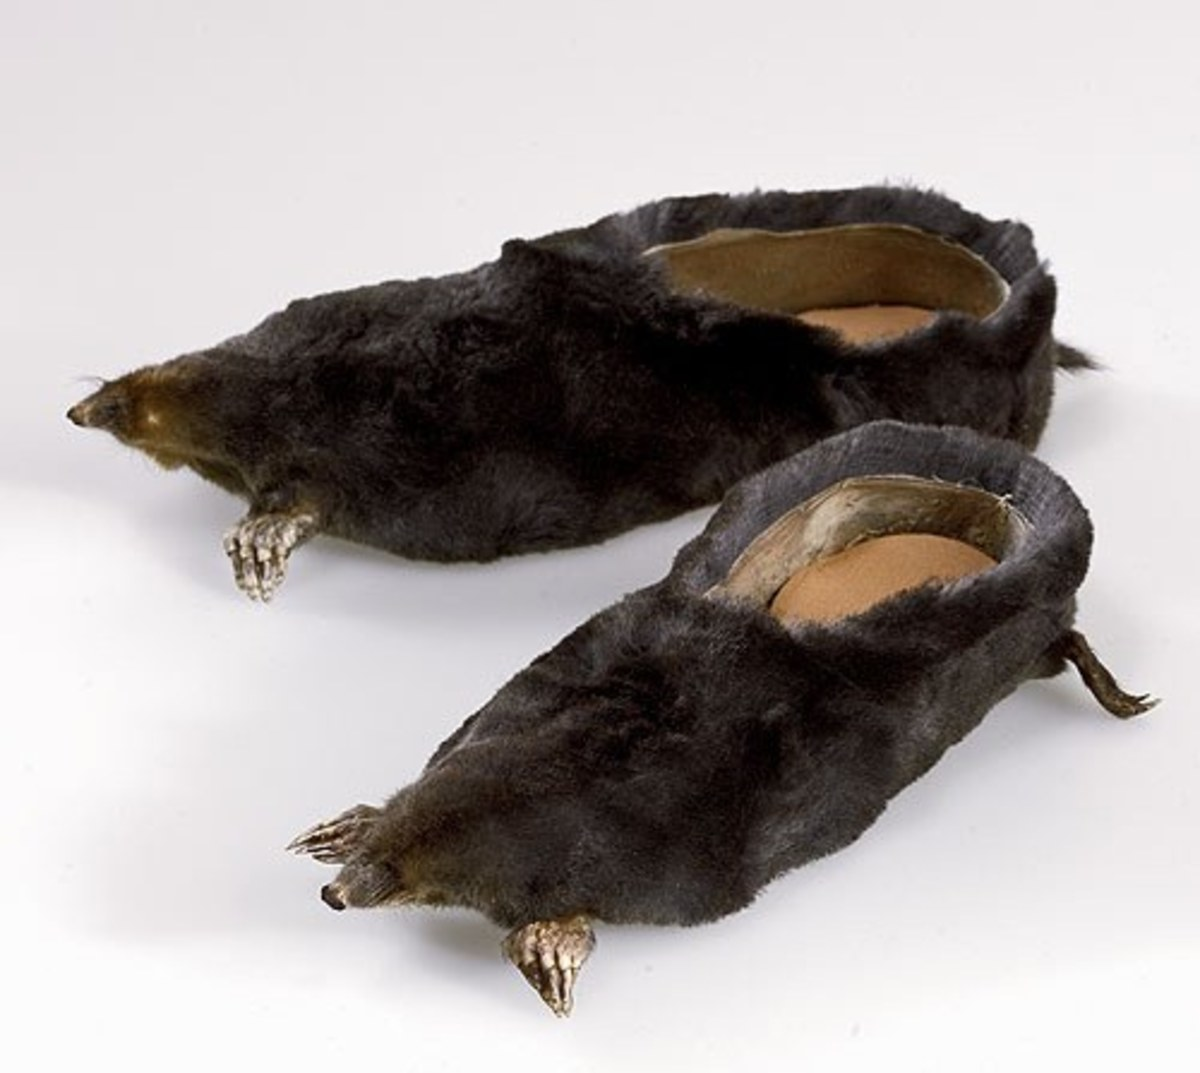 When these slippers are almost worn out, they would make a novelty gardening shoe.